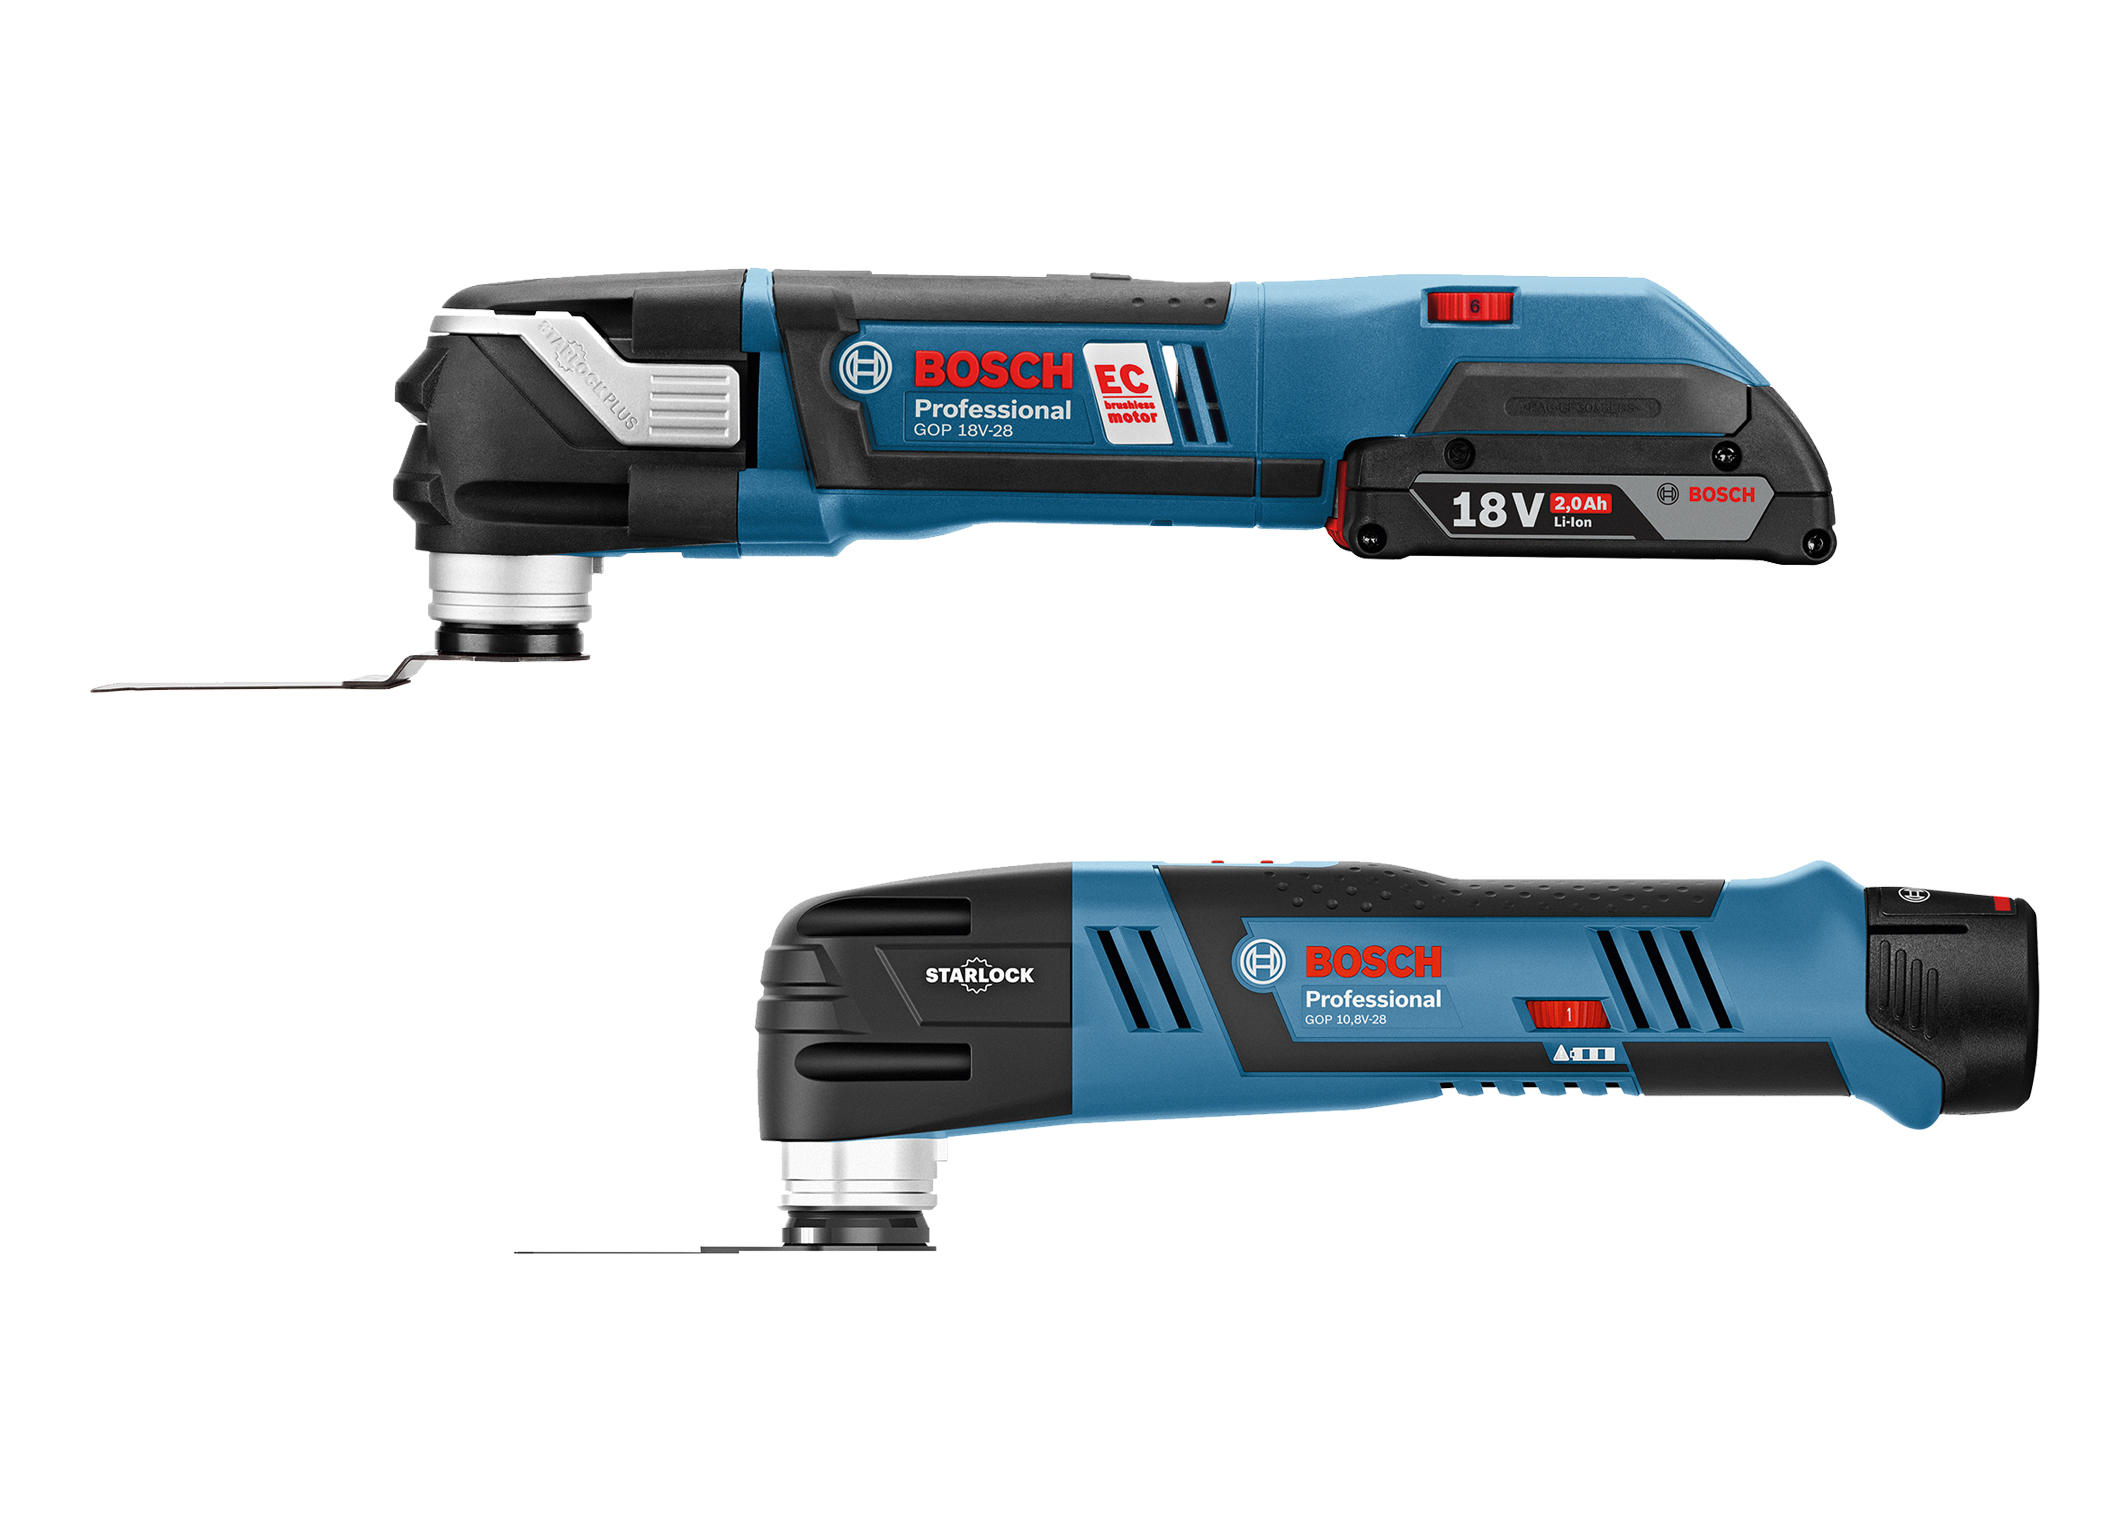 New bosch cordless 18v and 12v oscillating multitools with starlock mount spotted tool craze - Bosch 10 8 v ...